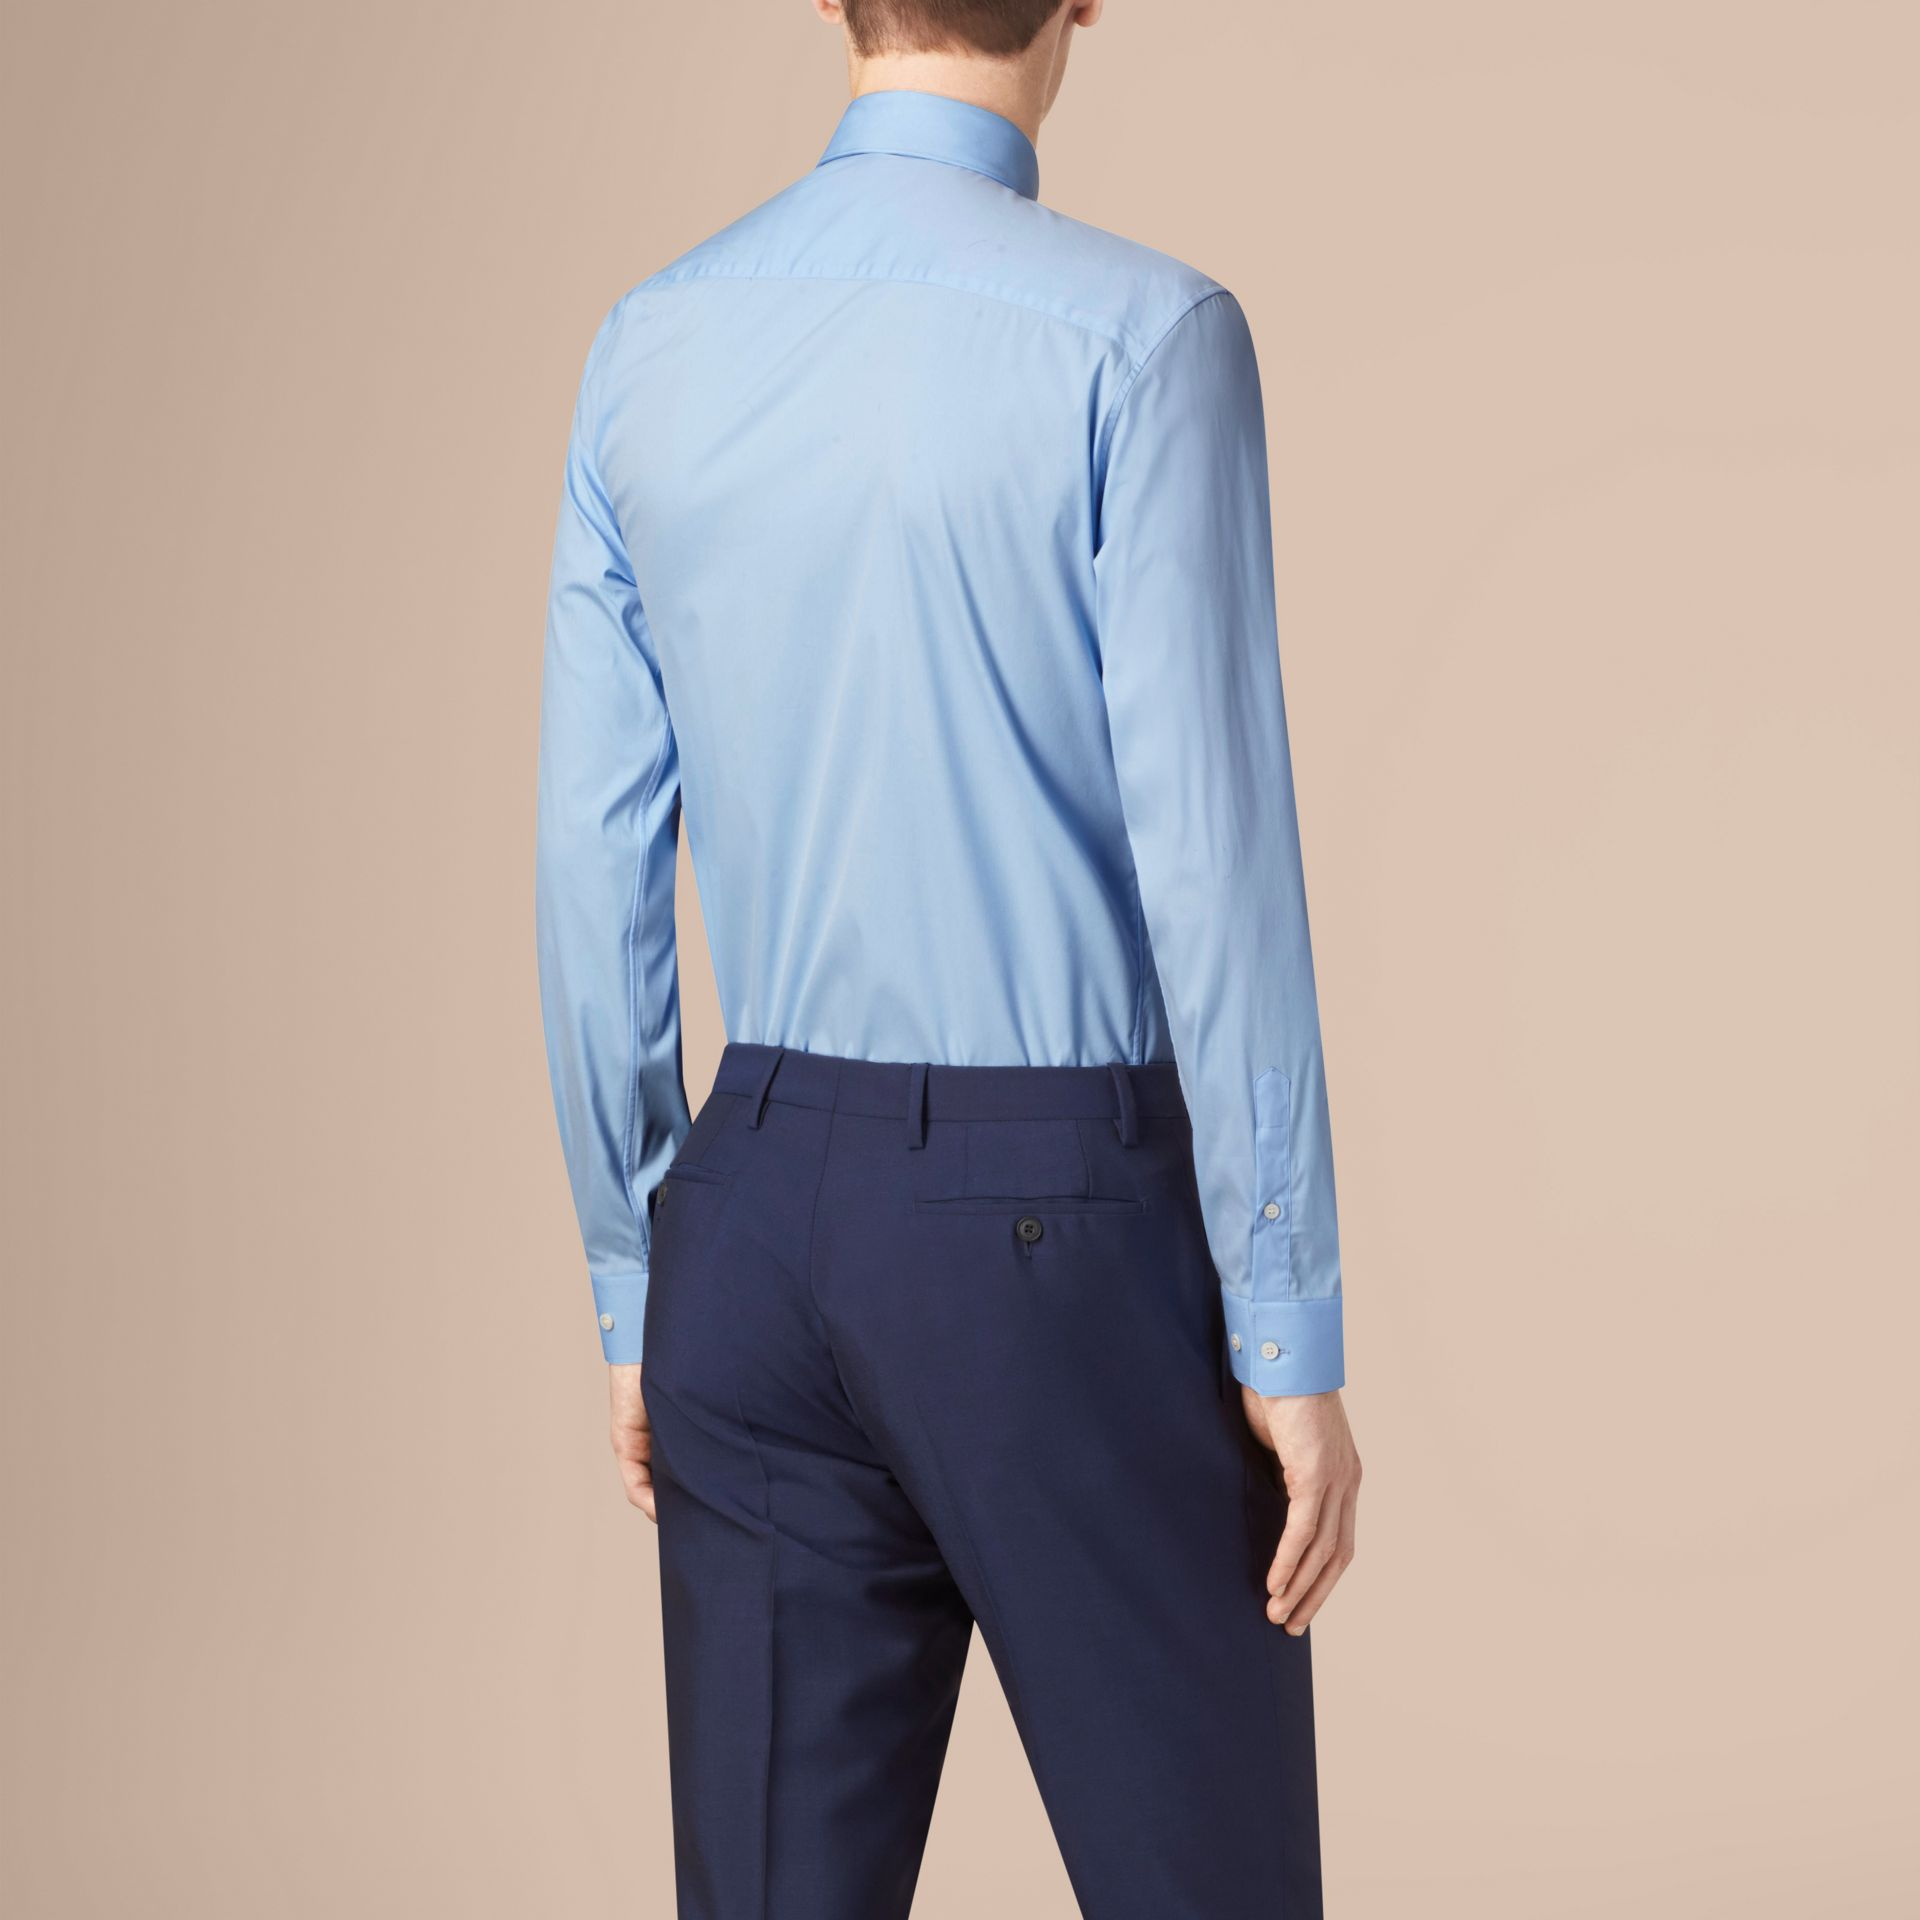 City blue Modern Fit Button-down Collar Stretch Cotton Shirt City Blue - gallery image 3